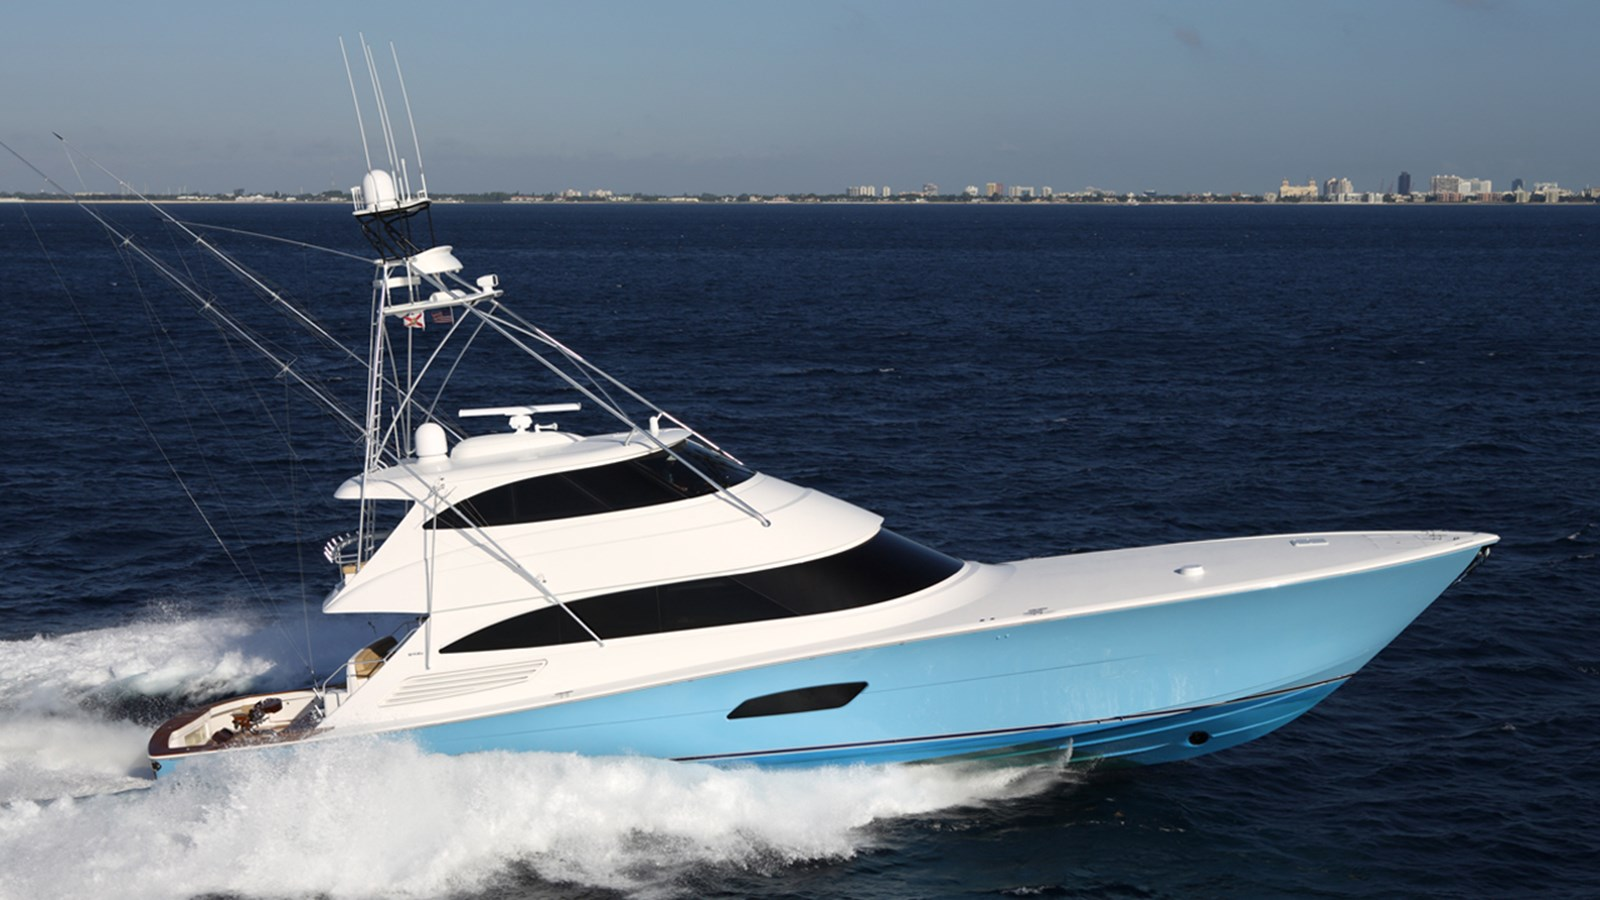 2018 VIKING 92 Enclosed Bridge (VK92-117) For Sale